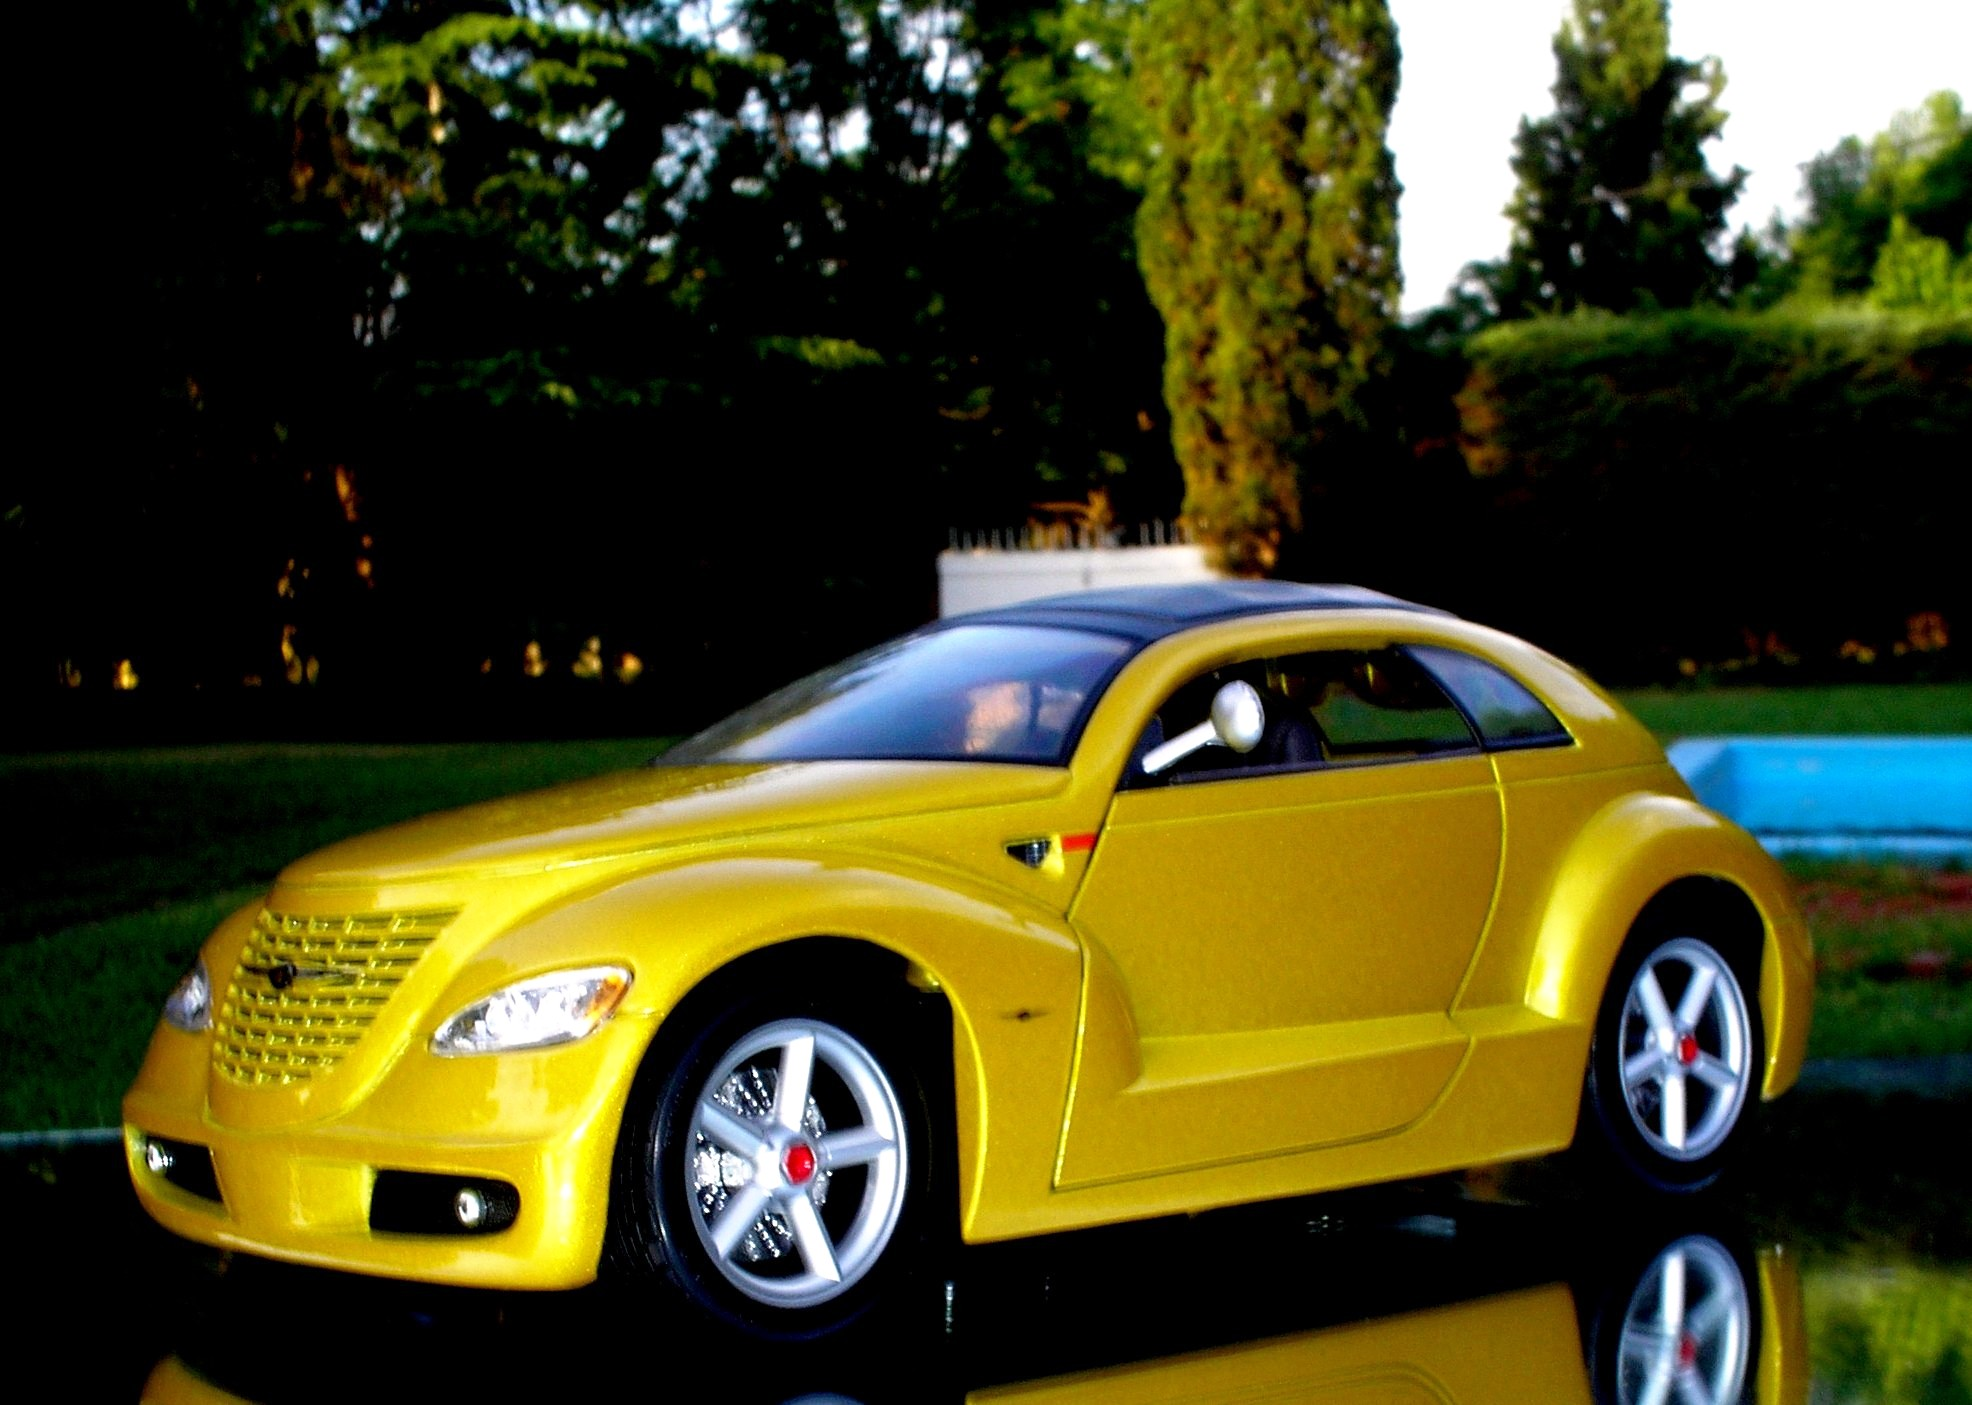 chrysler pronto cruizer #0